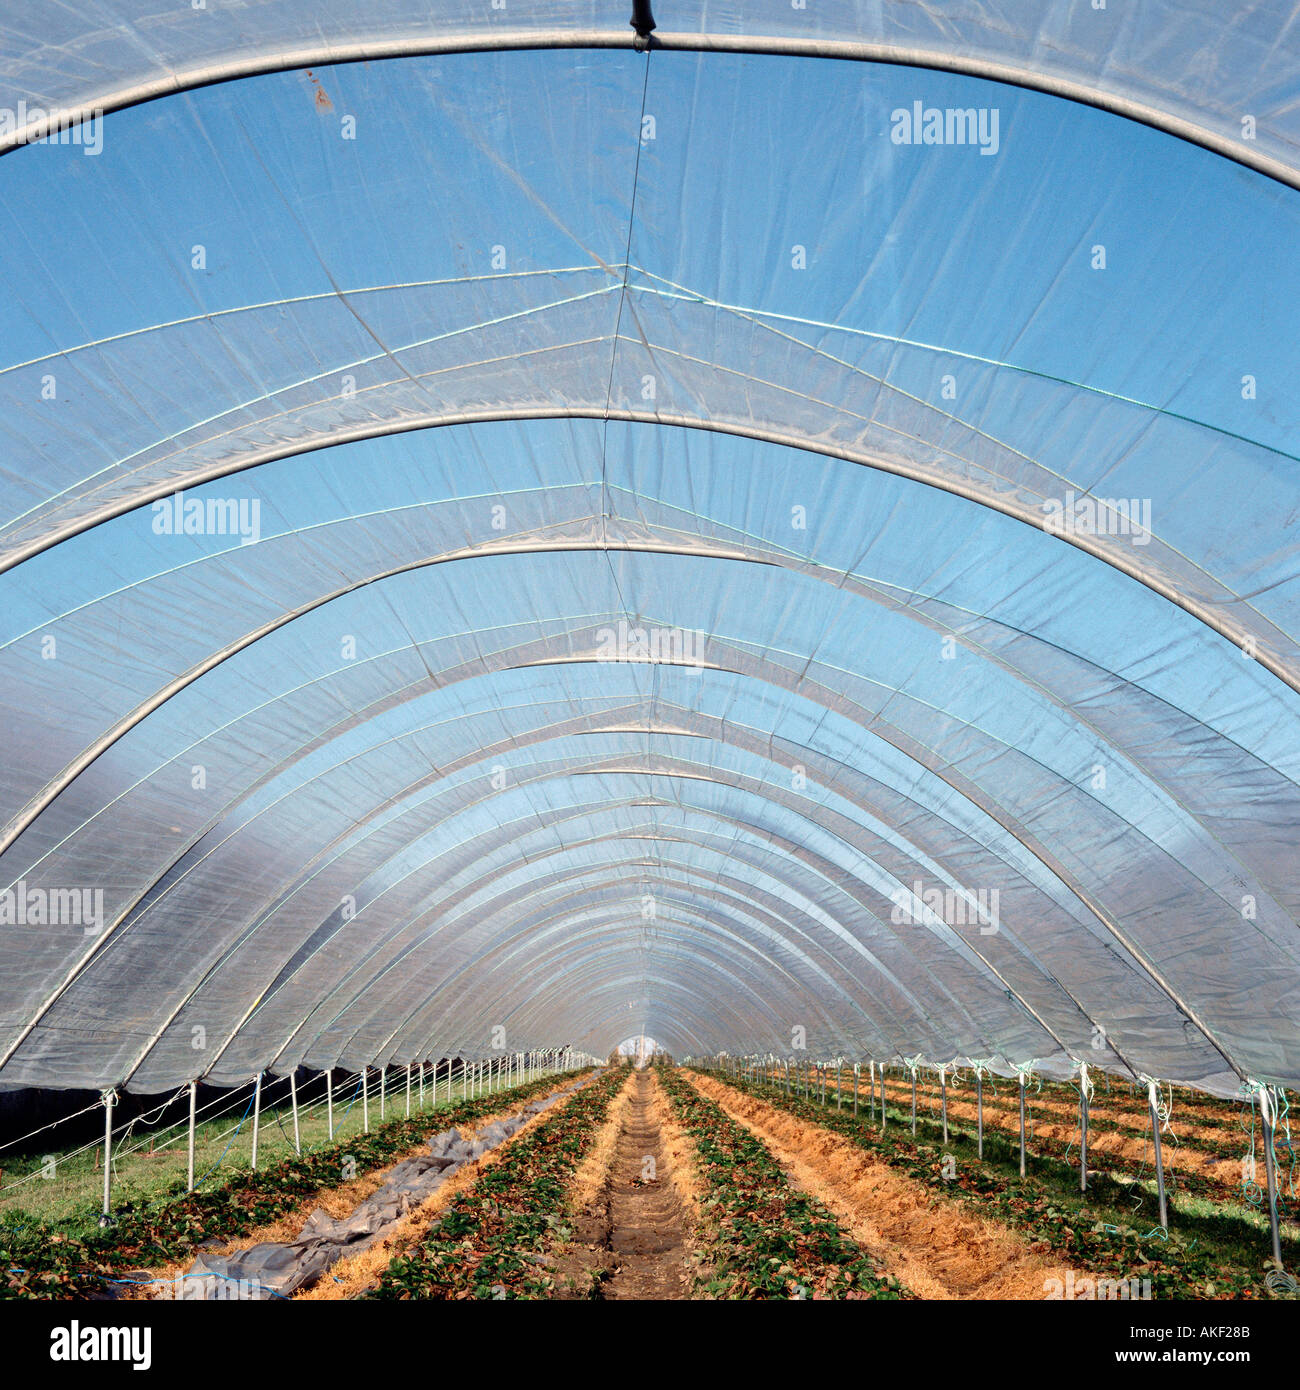 Cultivation in polytunnel - Stock Image